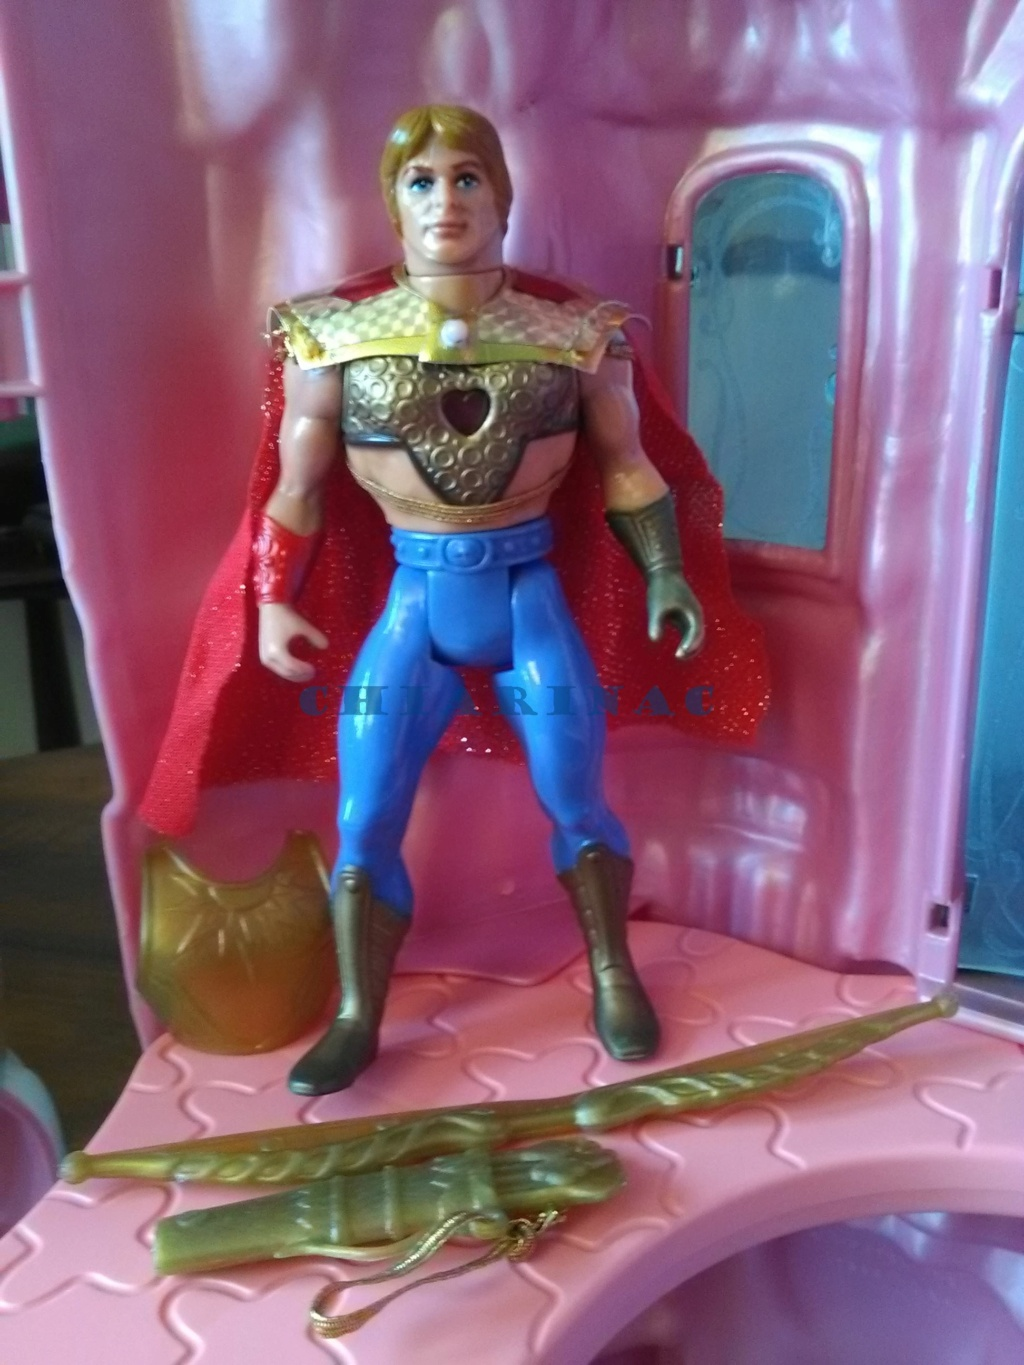 Vendo favoloso lotto She-Ra Princess of Power / Principessa del potere Mattel (Crystal Castle, 10 personaggi, 2 creature, Fantastic Fashions) Img_2073